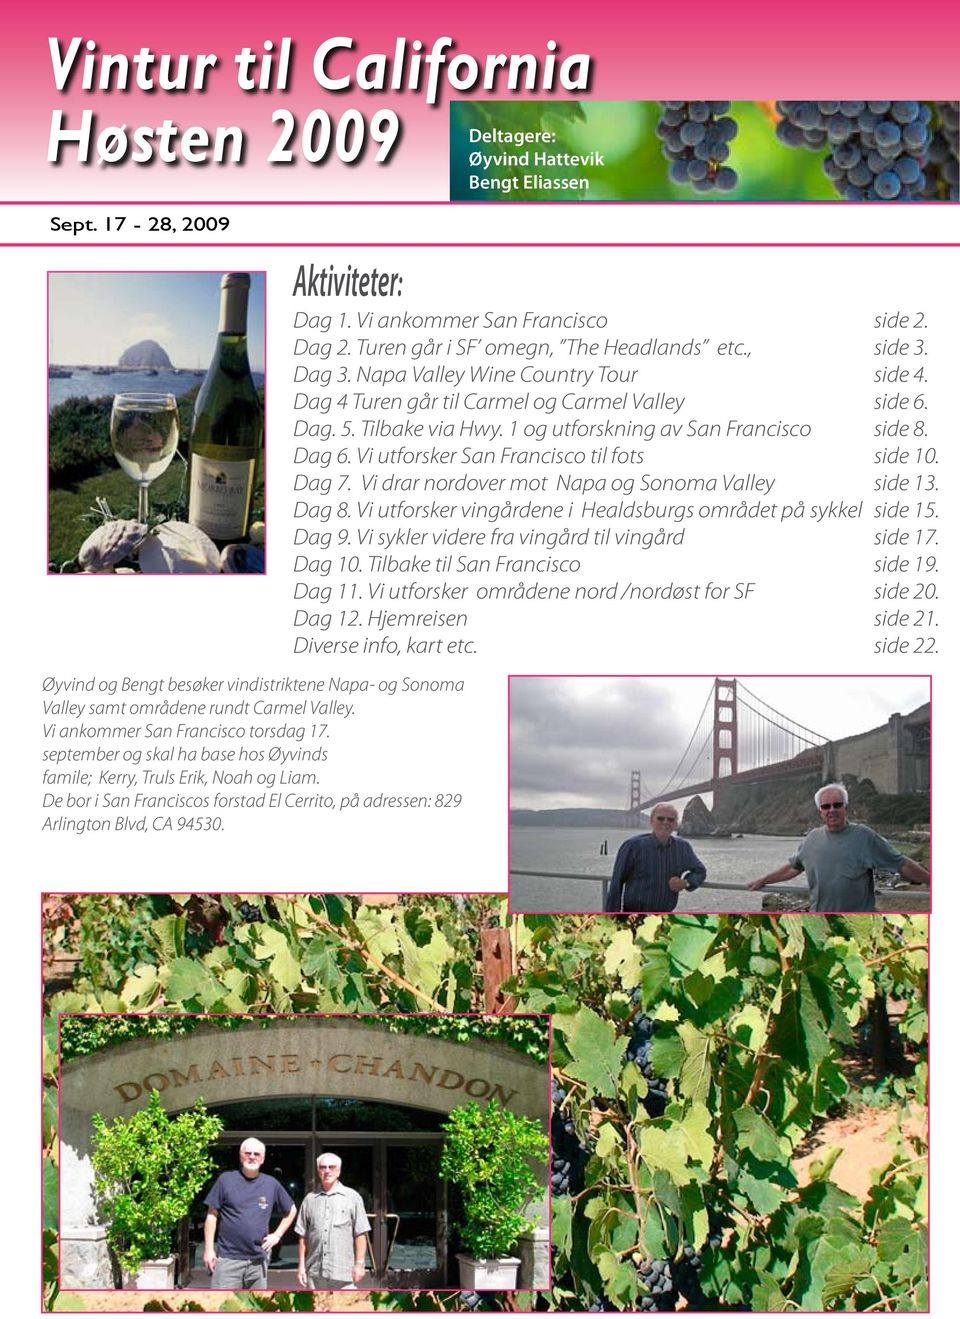 Aktiviteter: Dag 1 Vi ankommer San Francisco side 2 Dag 2 Turen går i SF omegn, The Headlands etc, side 3 Dag 3 Napa Valley Wine Country Tour side 4 Dag 4 Turen går til Carmel og Carmel Valley side 6